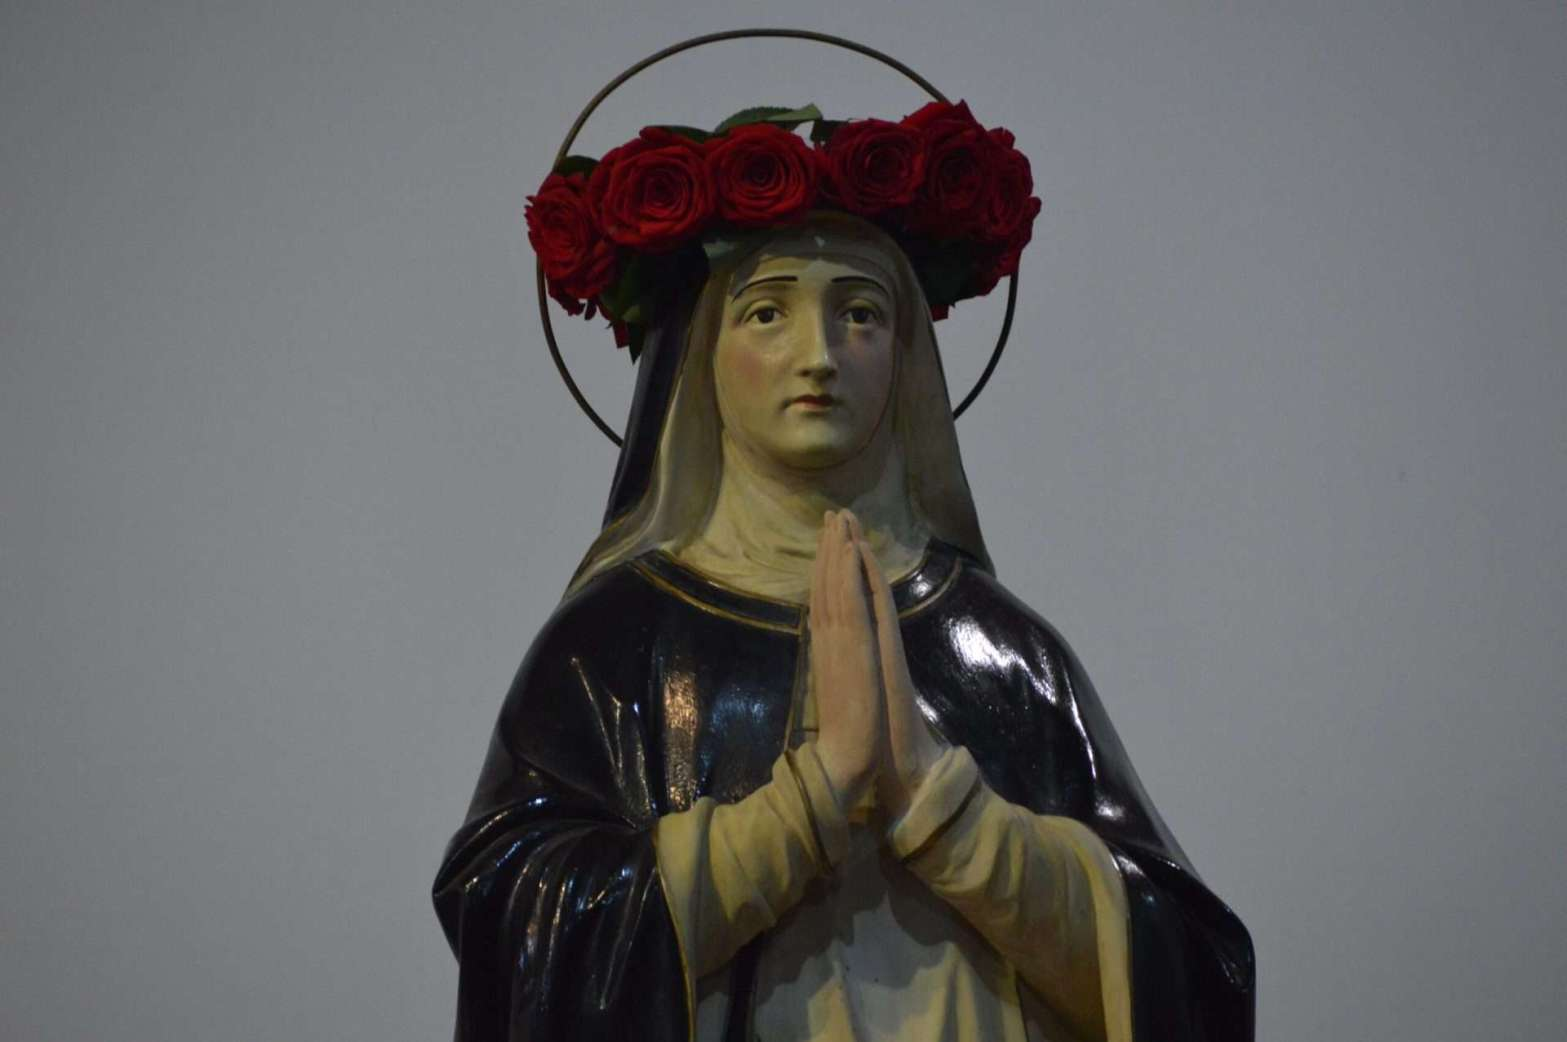 Are you an exhausted mother? Pray this prayer to St. Rose of Lima for strength